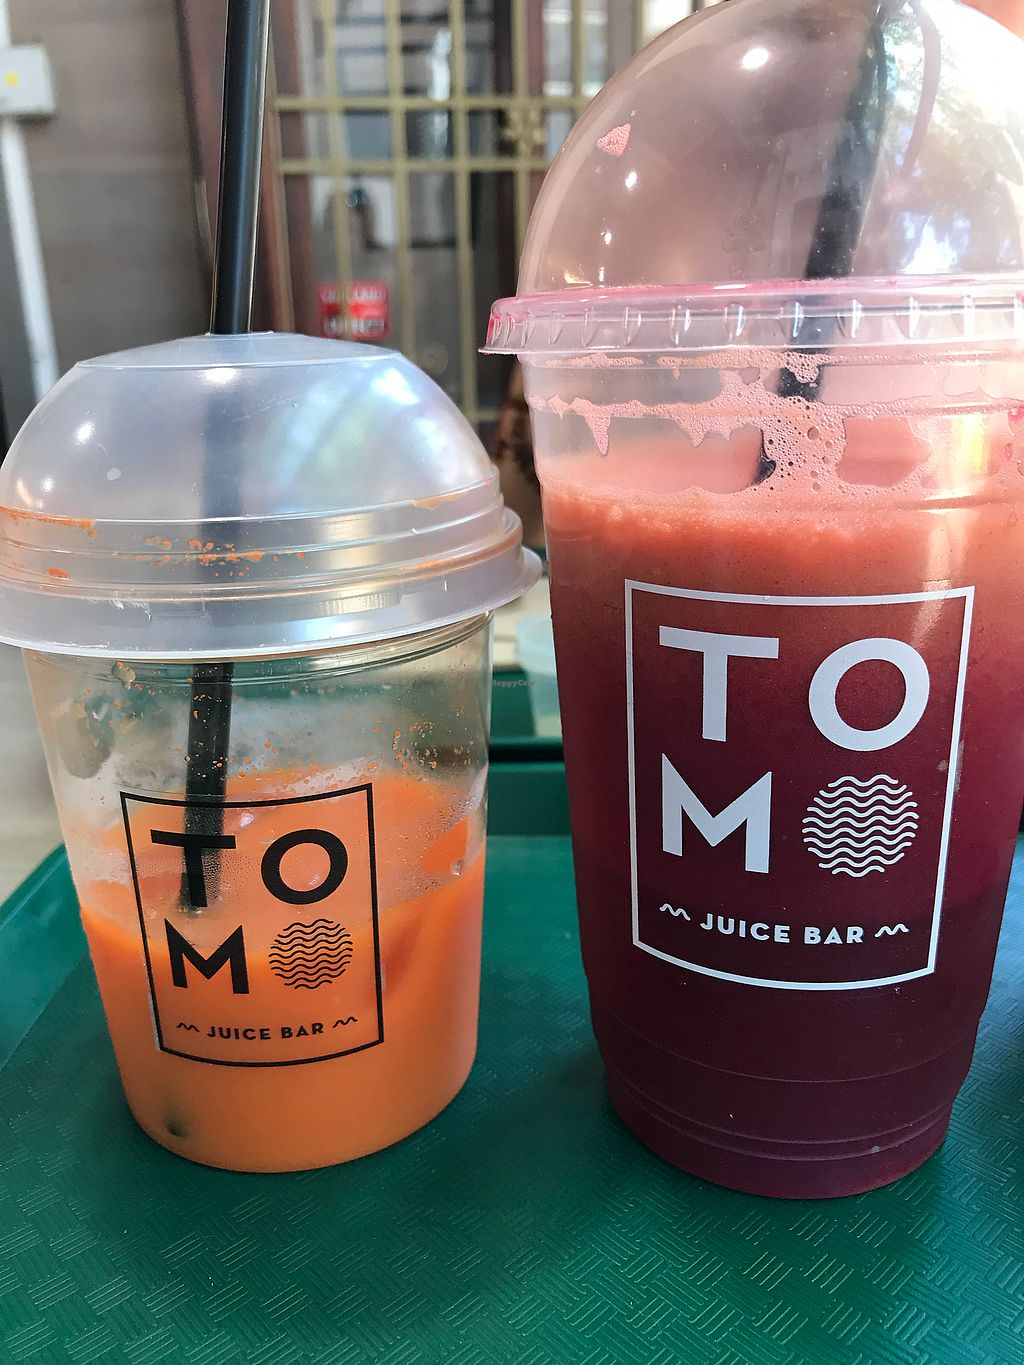 """Photo of TOMO juice bar  by <a href=""""/members/profile/Sezbakes"""">Sezbakes</a> <br/>Fresh juice  <br/> January 24, 2018  - <a href='/contact/abuse/image/90386/350441'>Report</a>"""